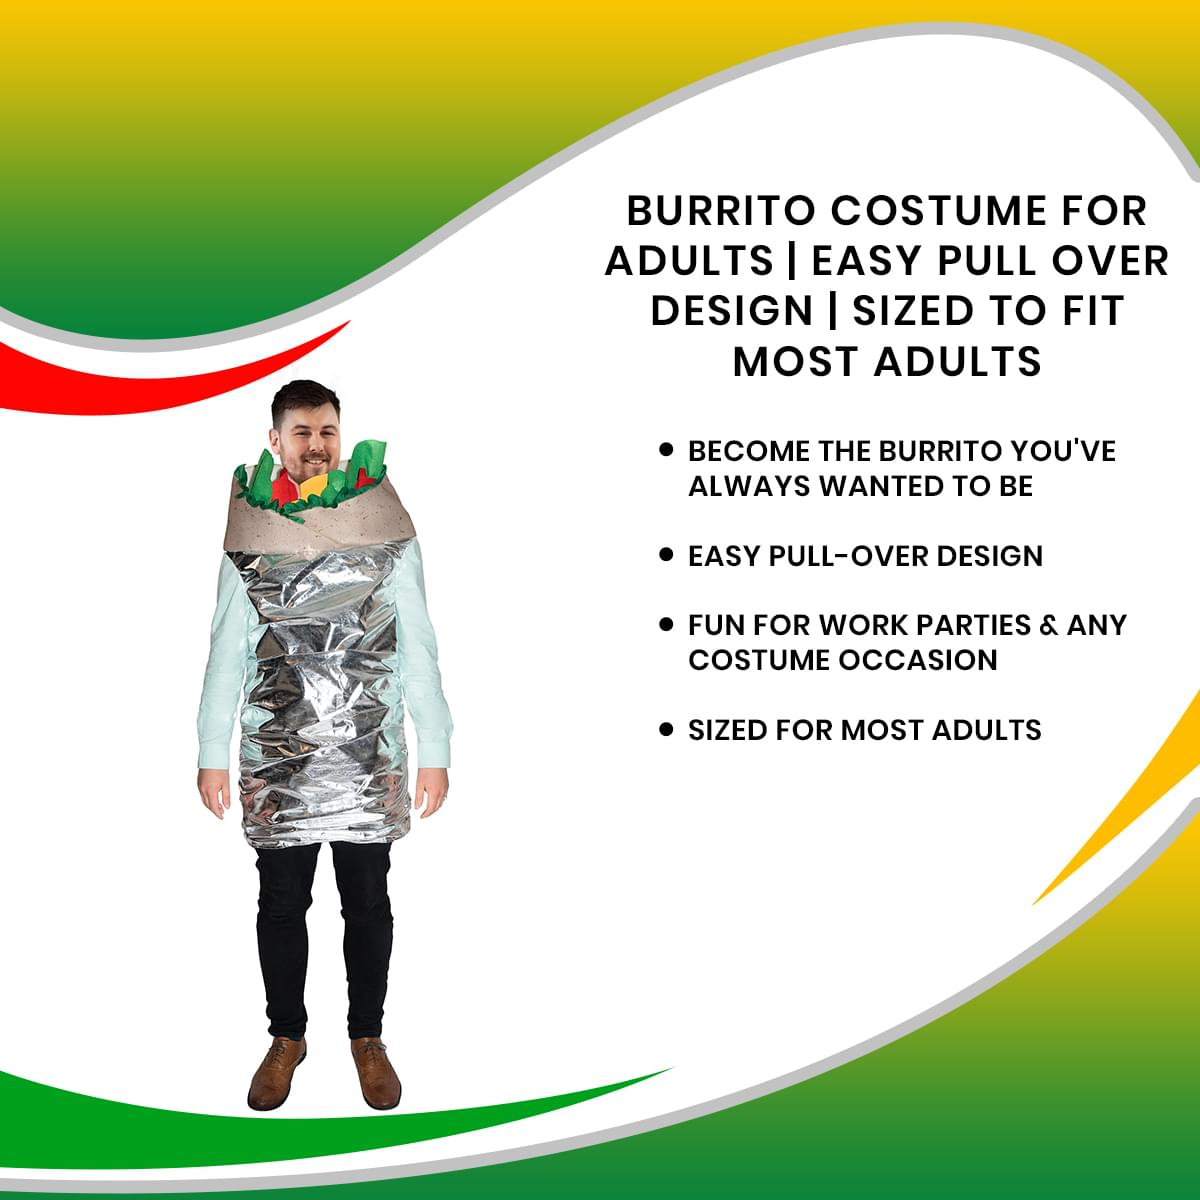 Burrito Costume For Adults | Easy Pull Over Design | Sized To Fit Most Adults